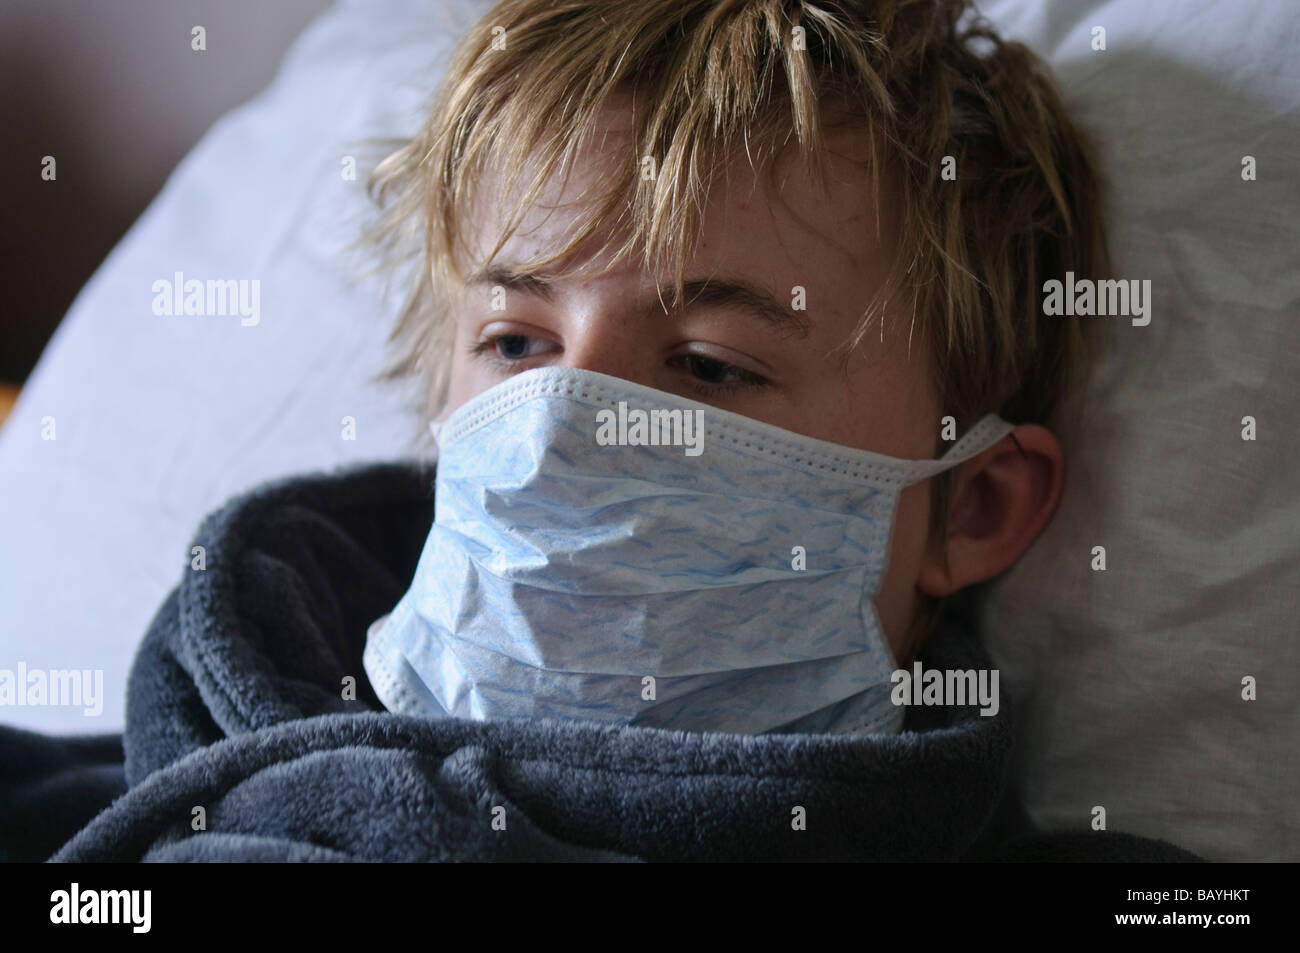 Teenage boy lying in bed wearing a mask - Stock Image